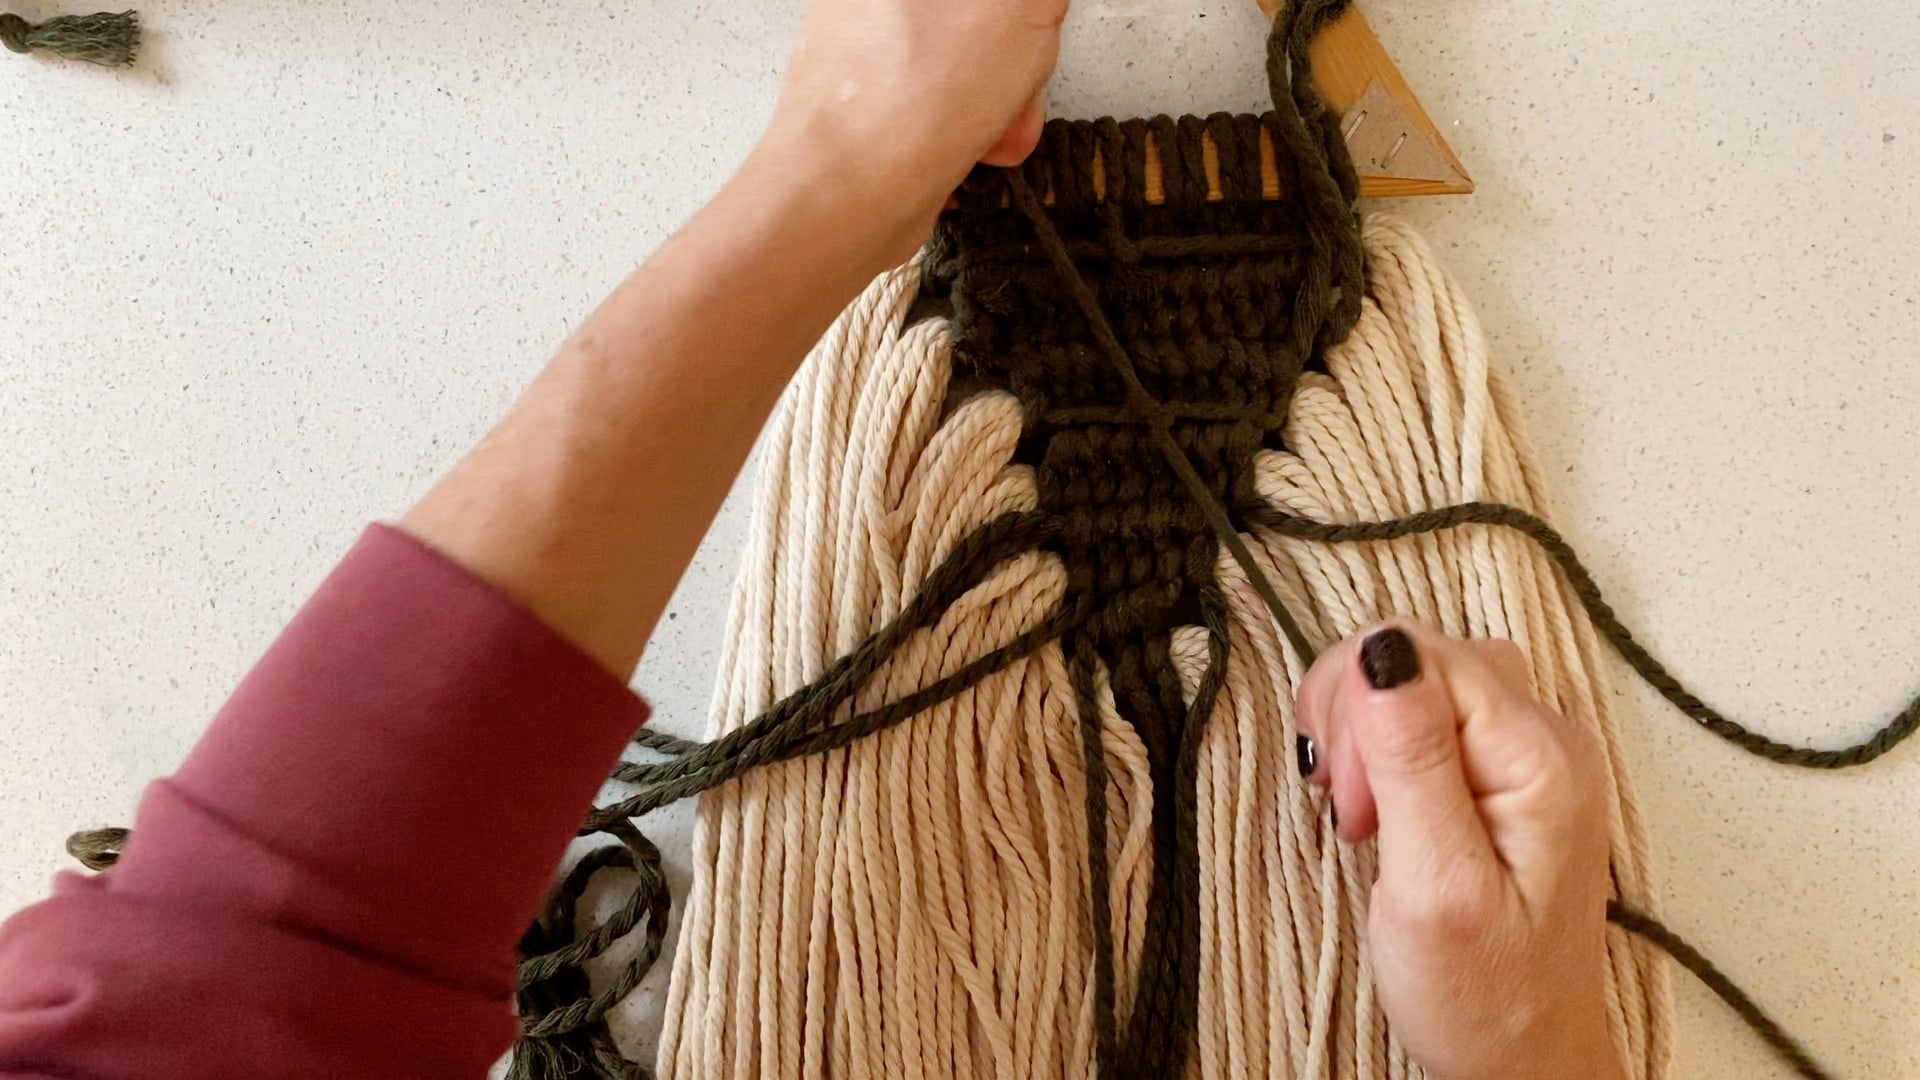 knotting the ends of dark green macrame cord